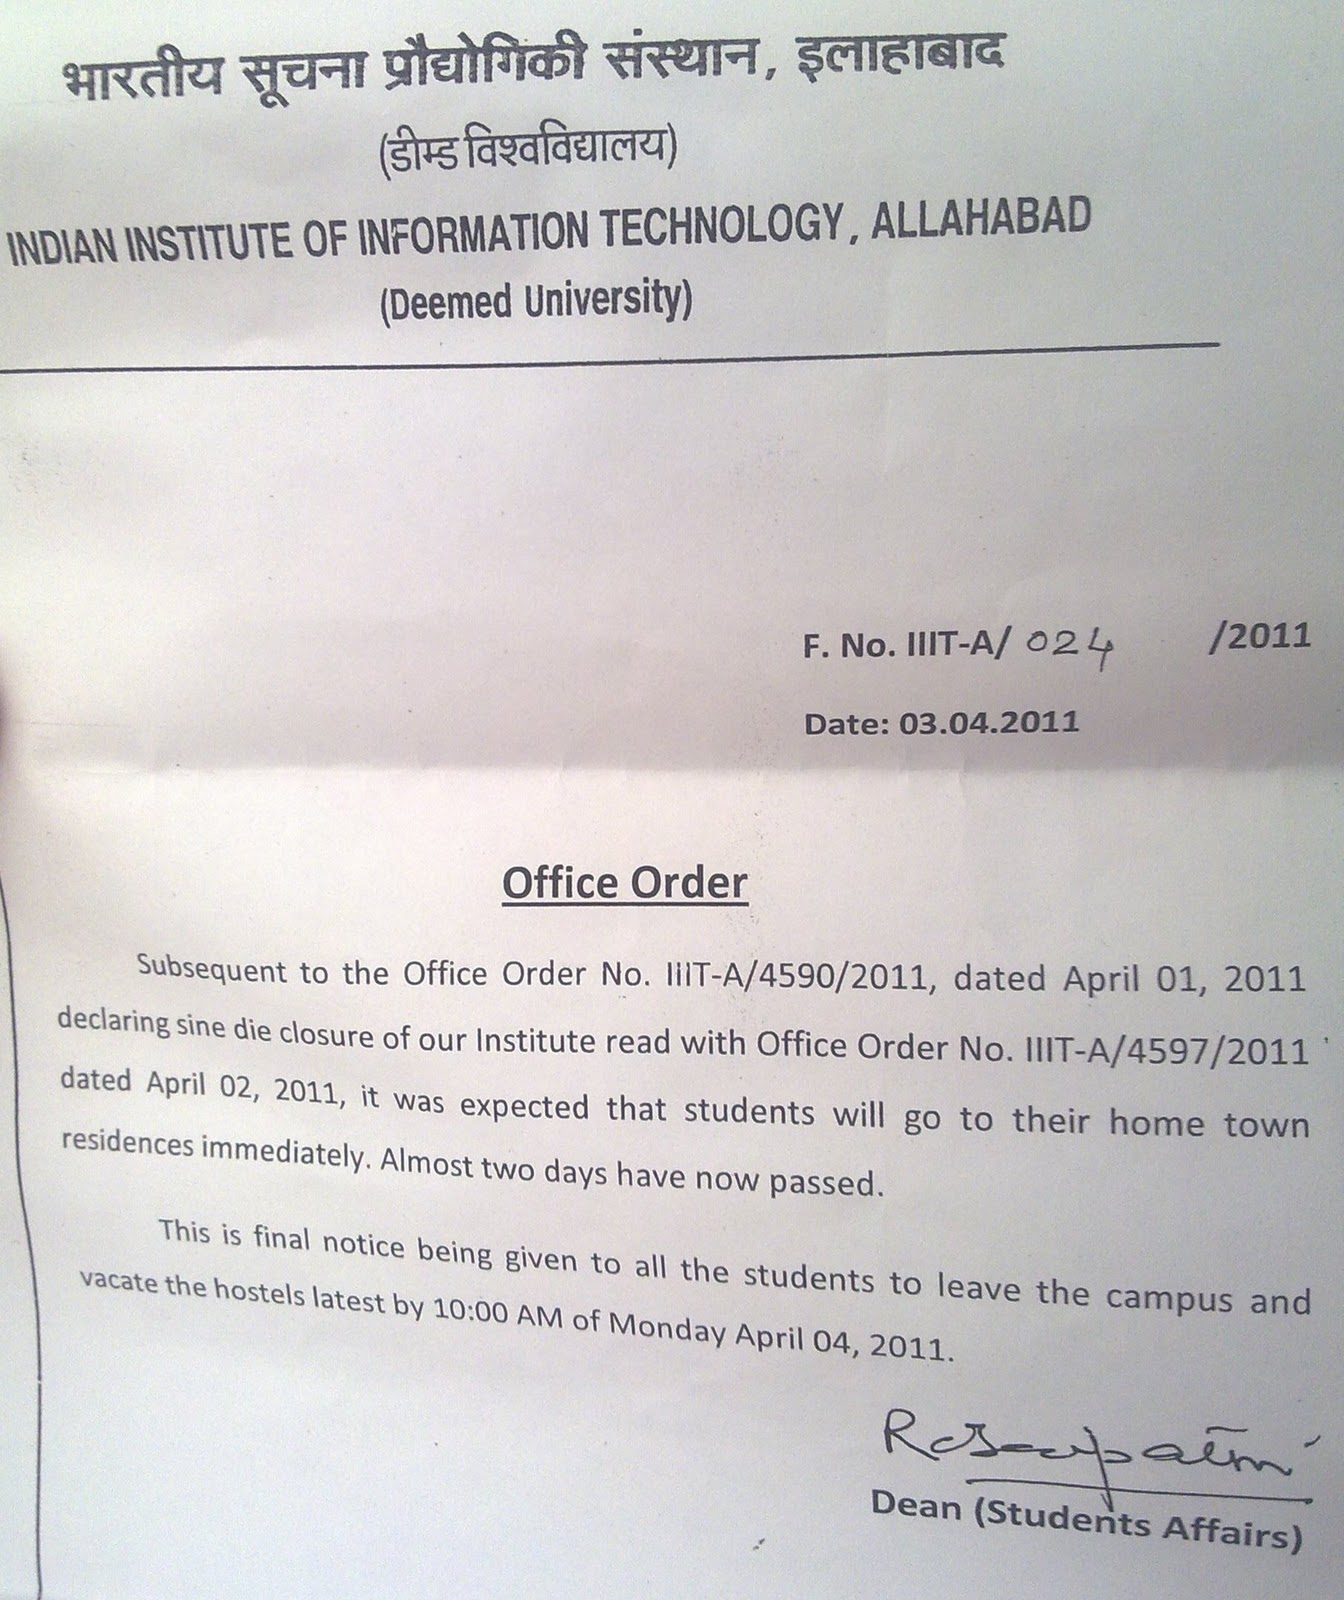 IIIT ALLAHABAD PROTEST 2011: Final office order threatening